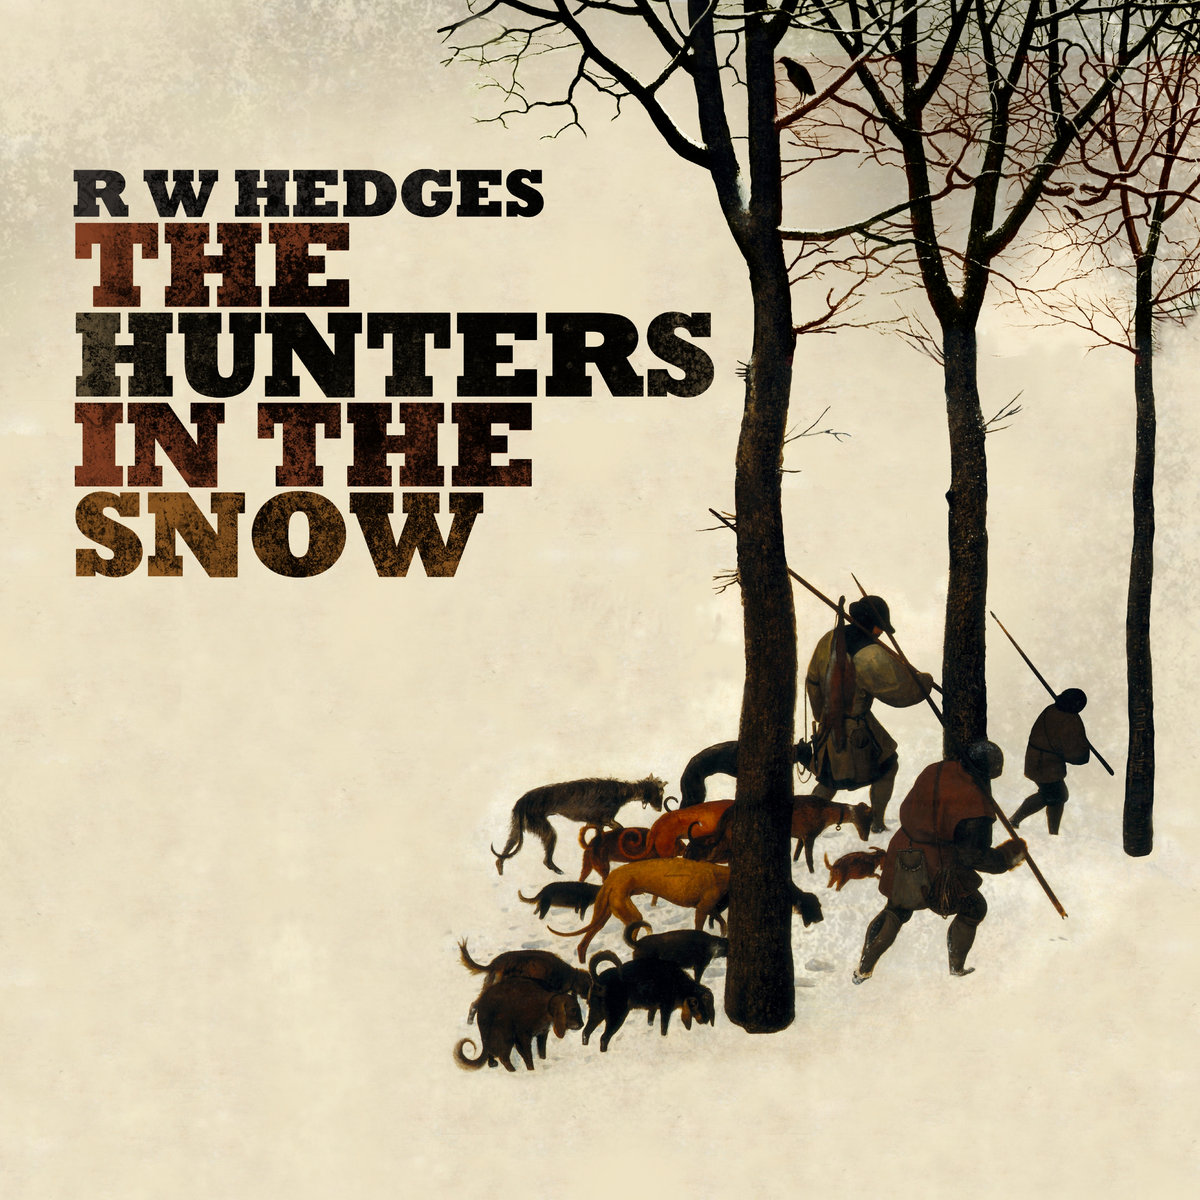 Resultado de imagen para hunters in the snow rw hedges